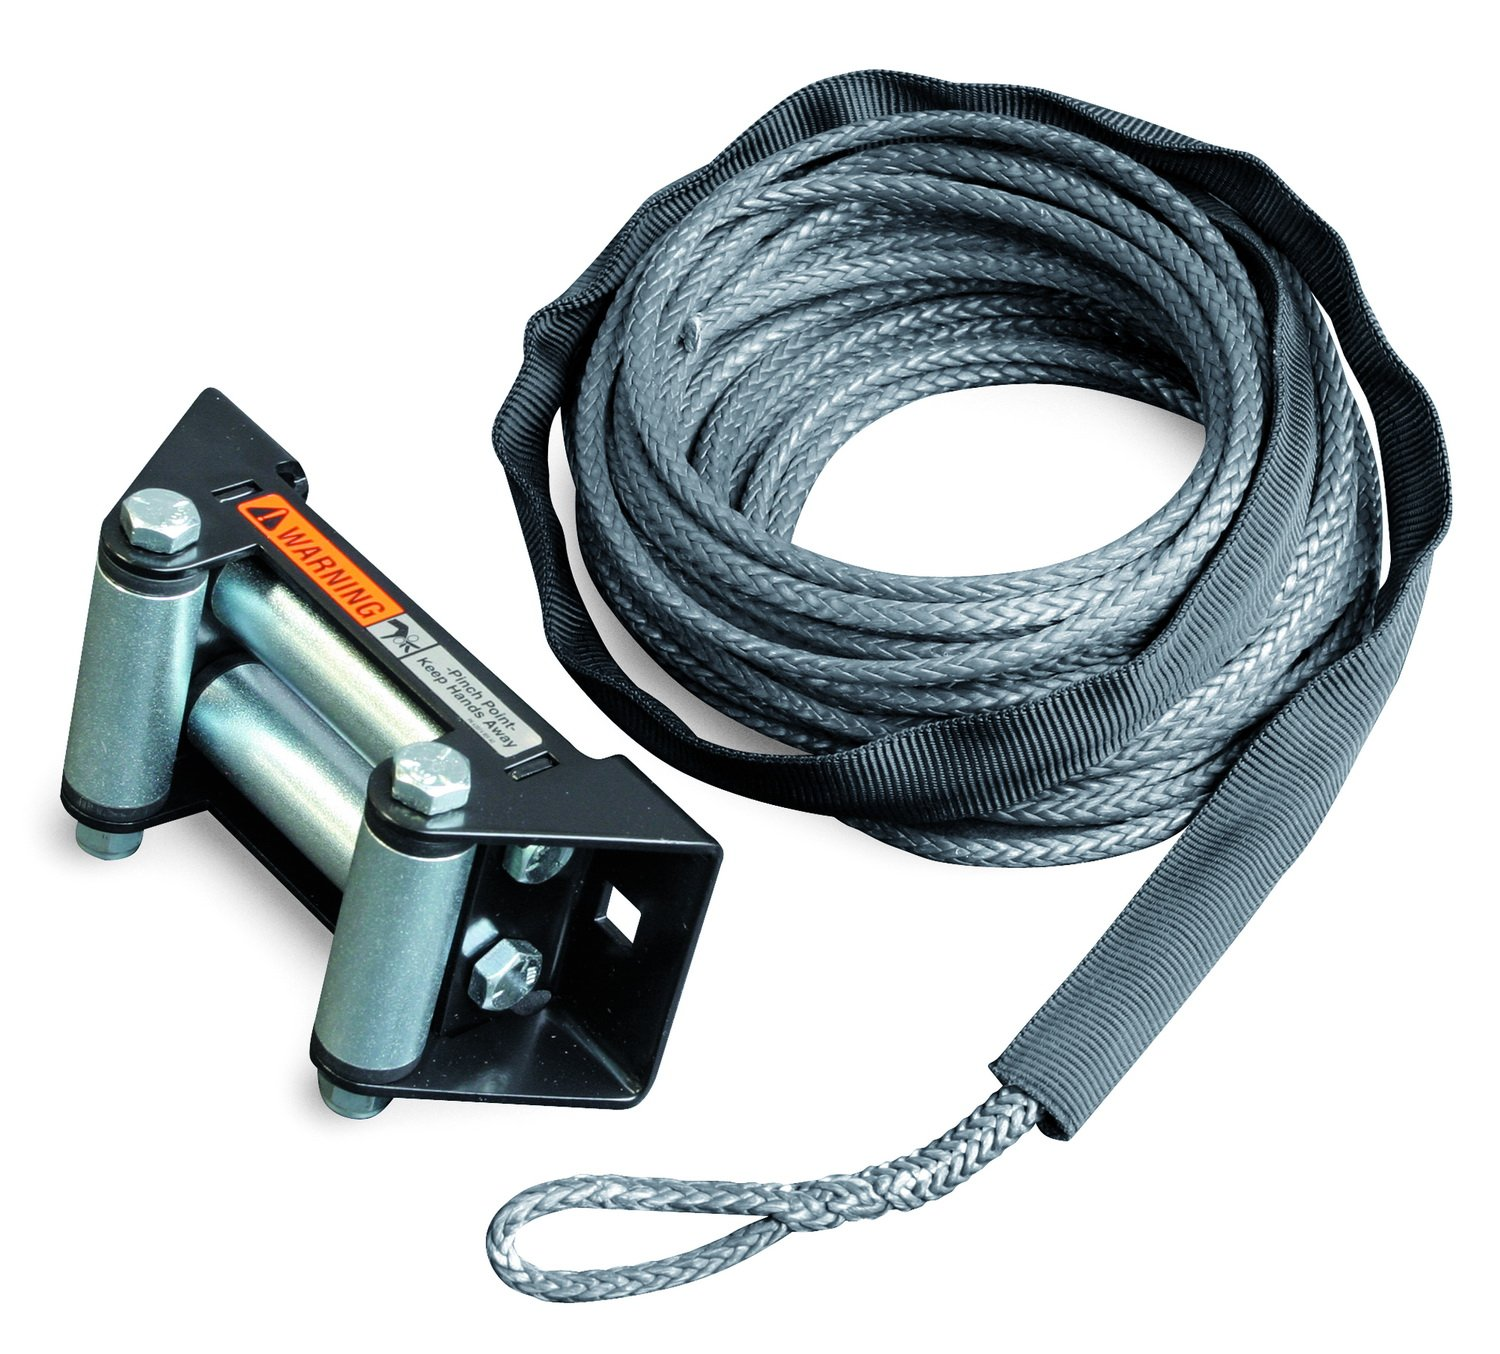 WARN 72495 Synthetic Rope Replacement Kit